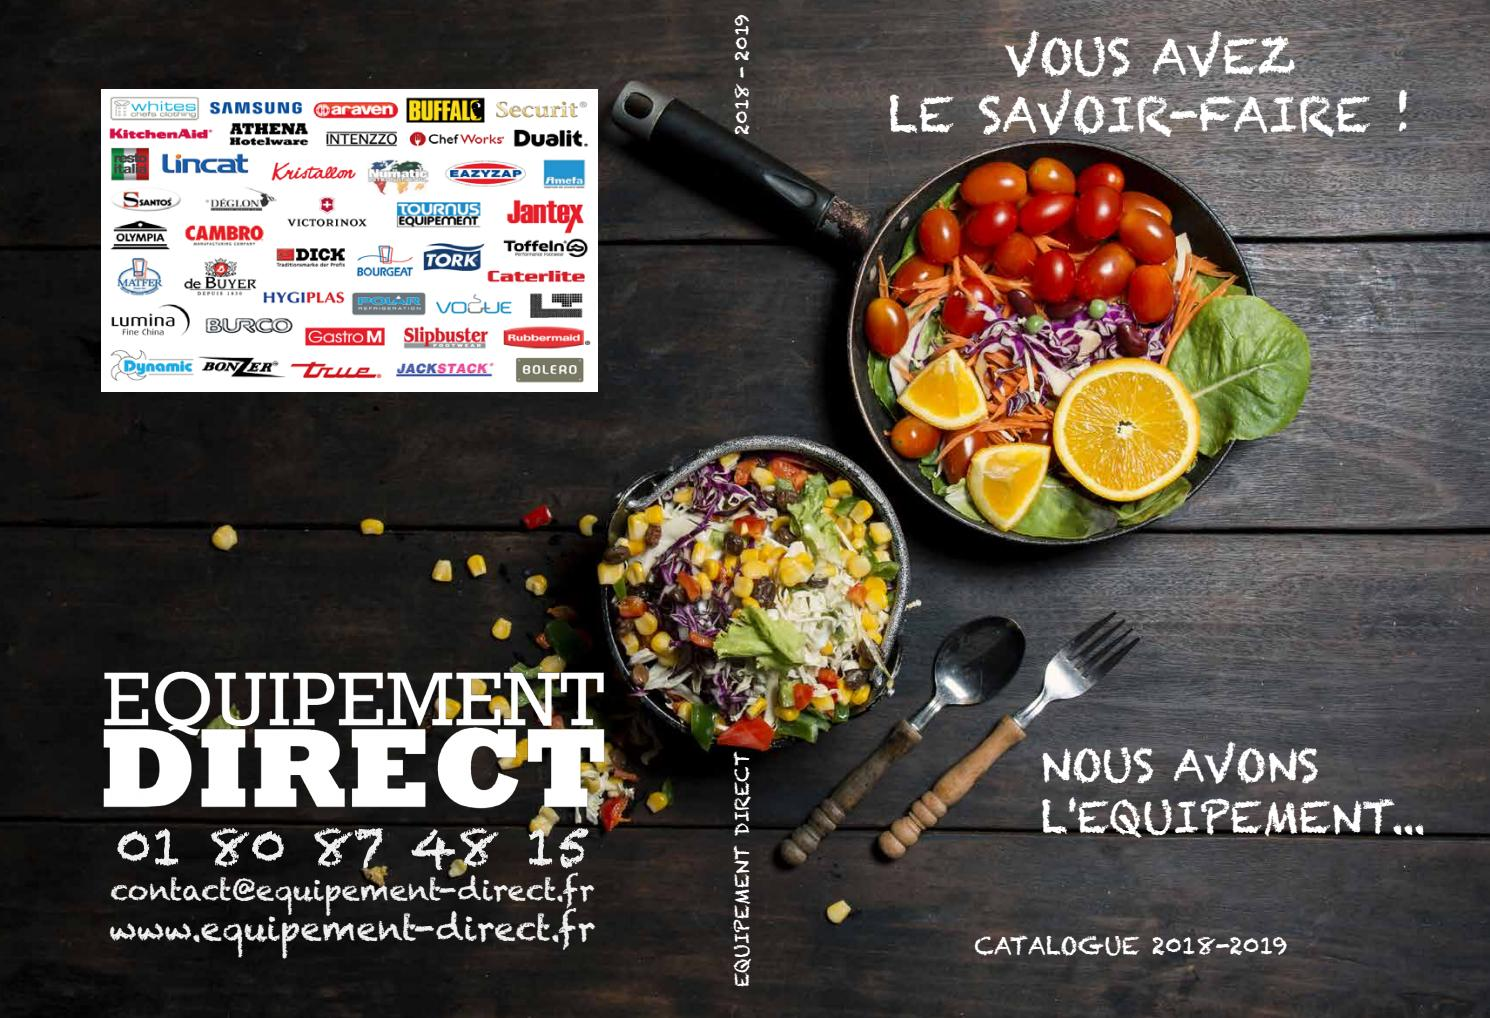 Catalogue g n ral 2018 equipement direct fr by equipement direct issuu - Direct equipement cuisine nobilia ...